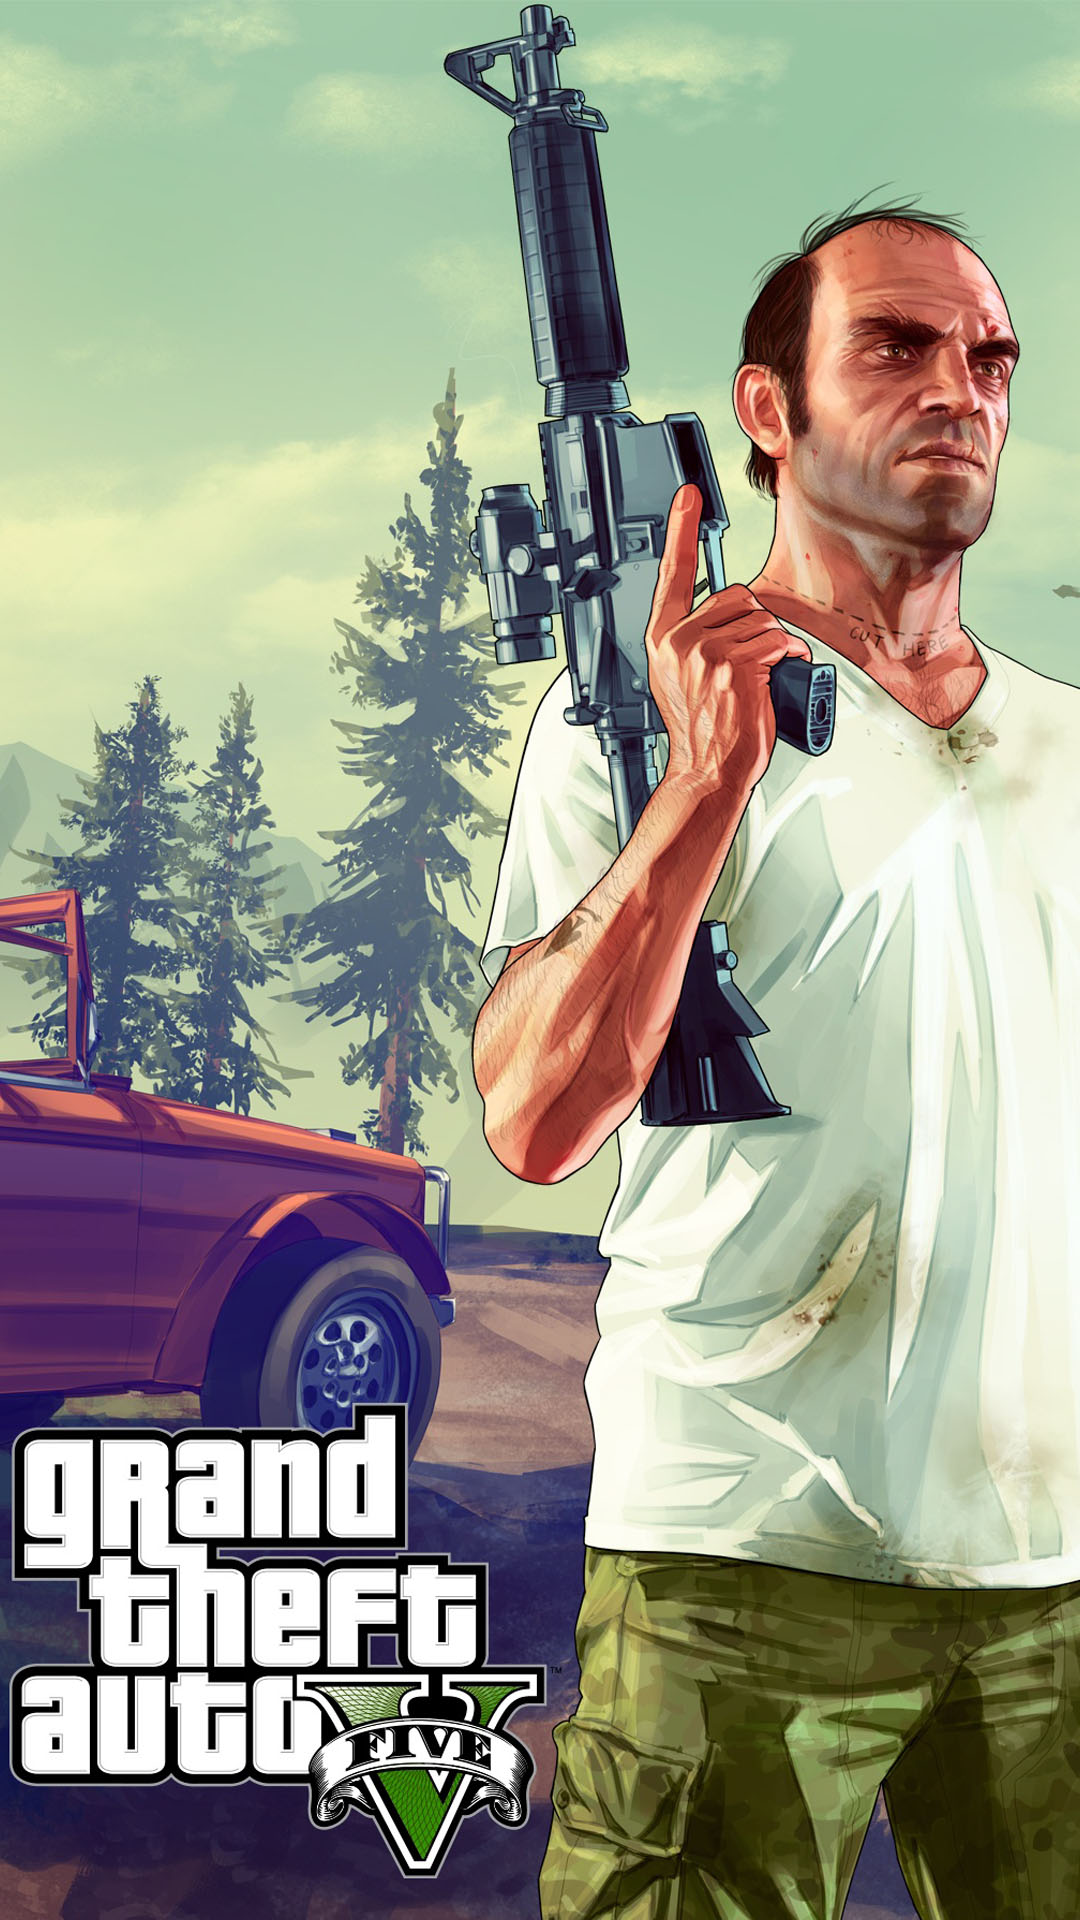 Grand Theft Auto Gta Best Htc One Wallpapers Free And Easy To